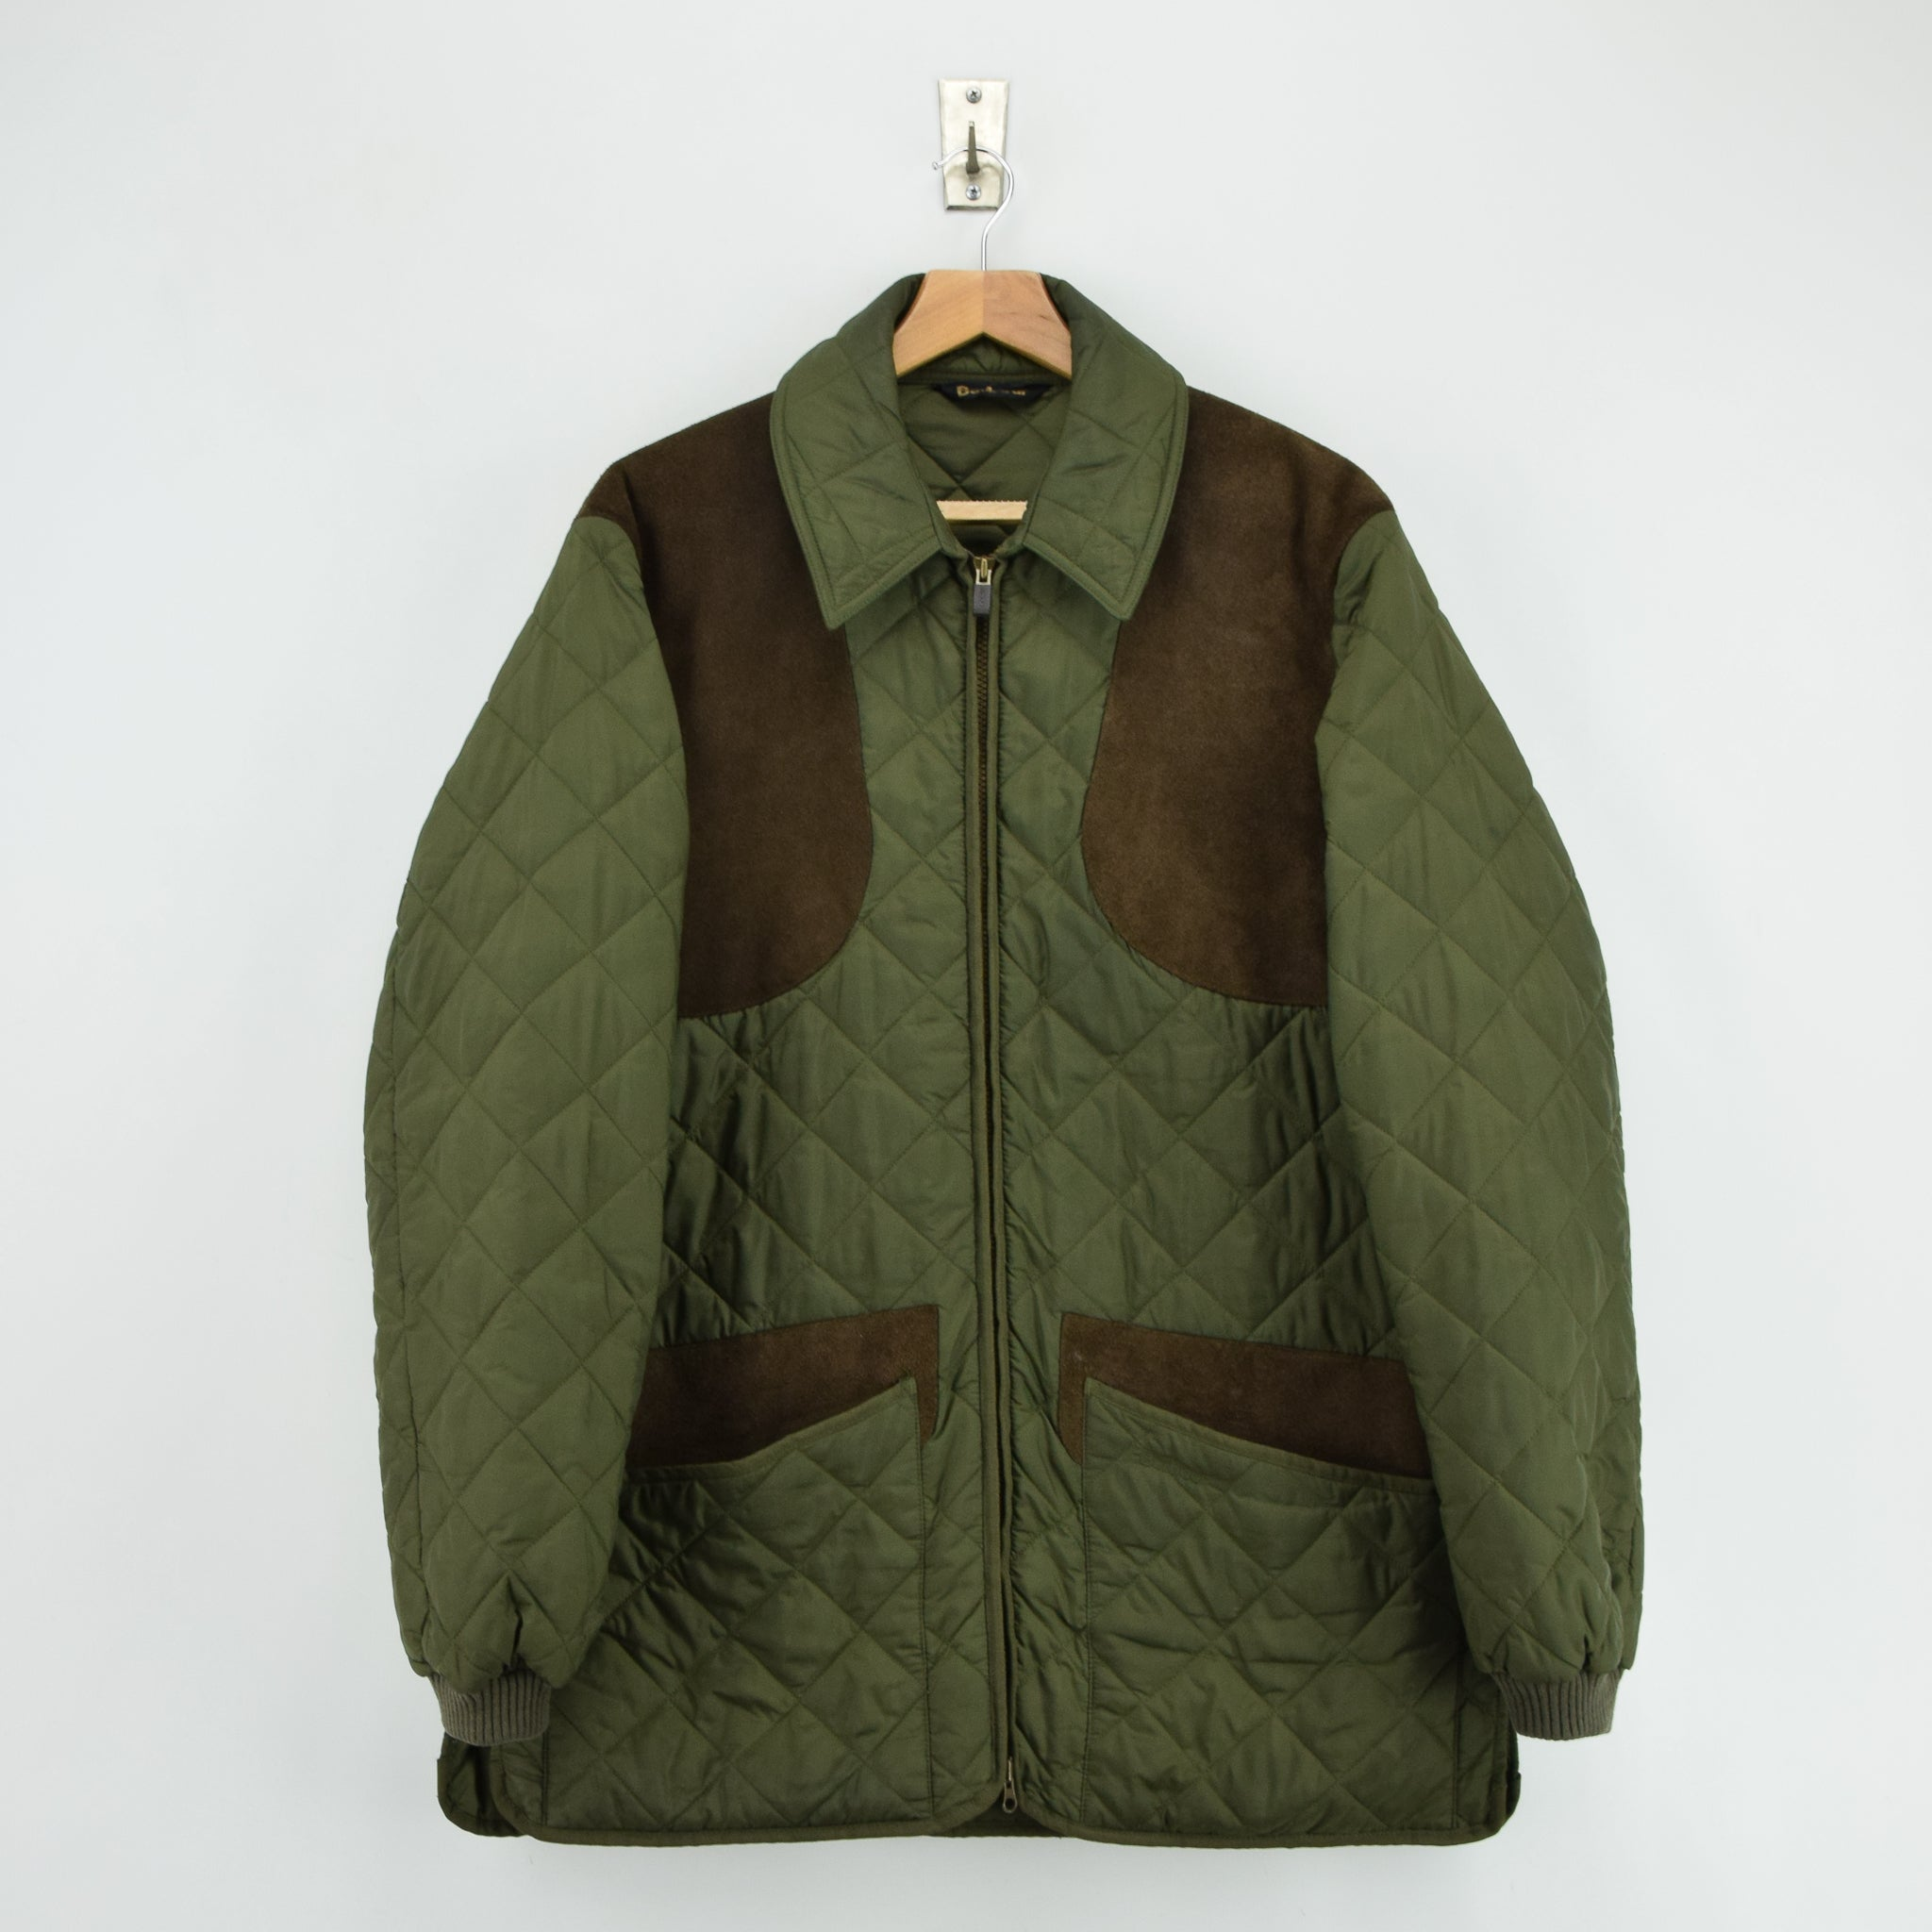 Barbour New Keeperwear Hunting Green Quilted Shooting Jacket Suede Patches M front